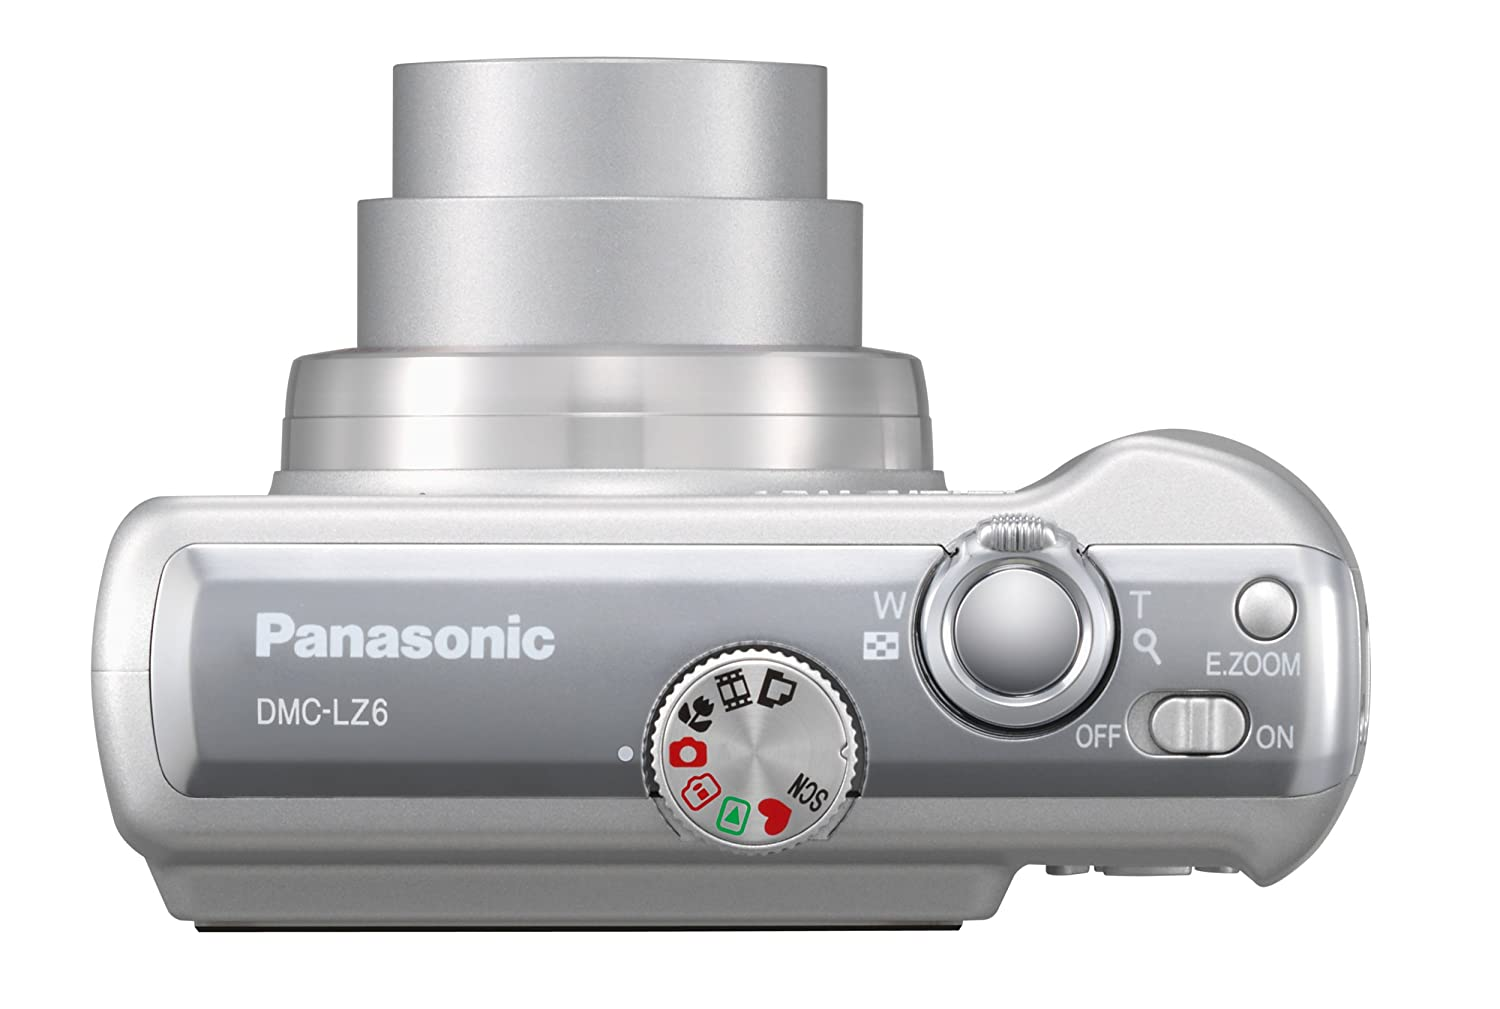 Panasonic Global